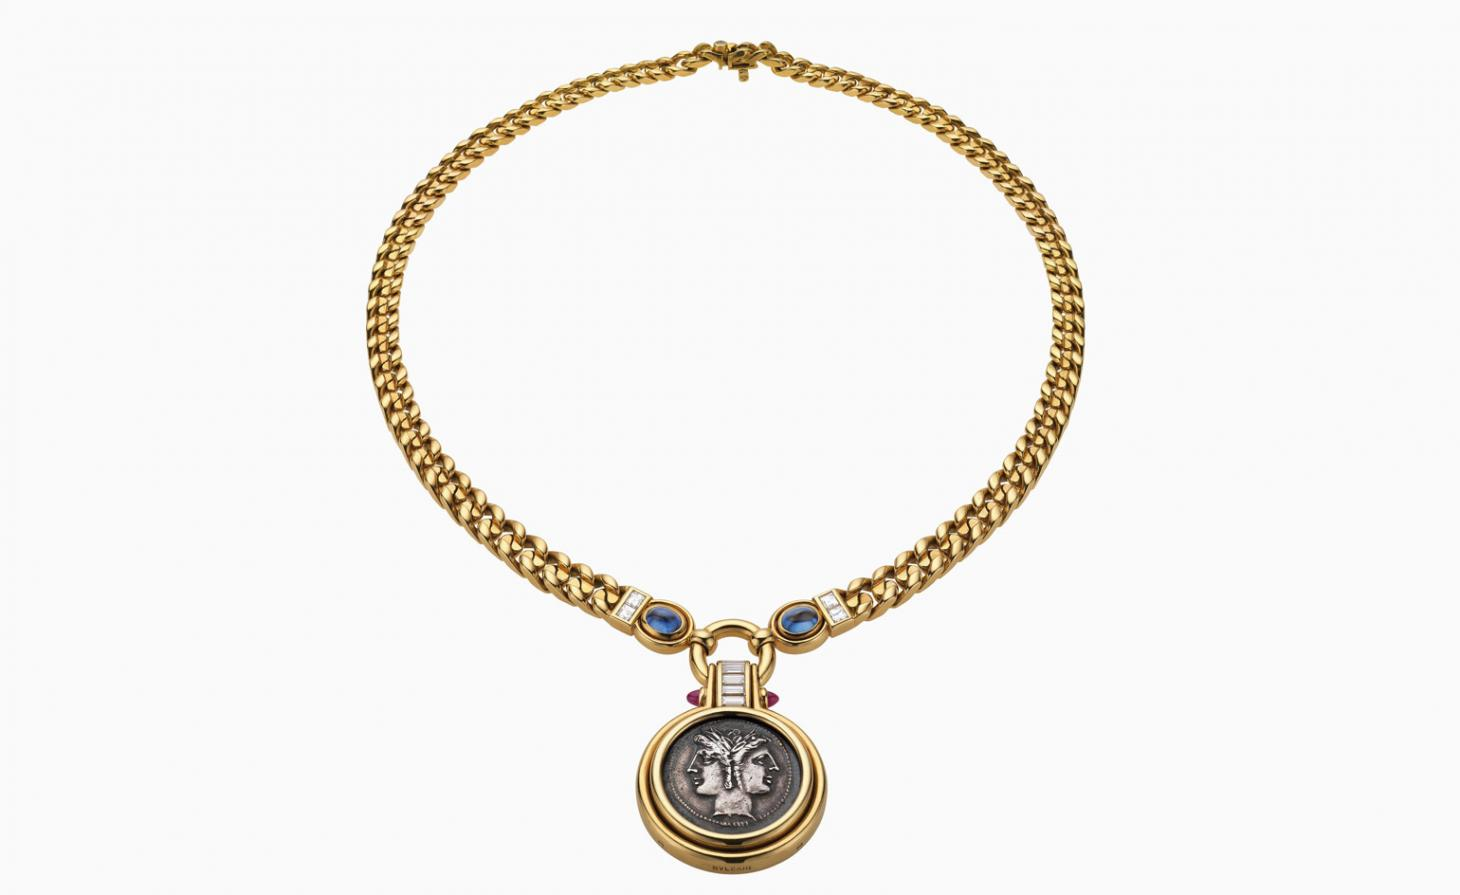 Bulgari Monete necklace